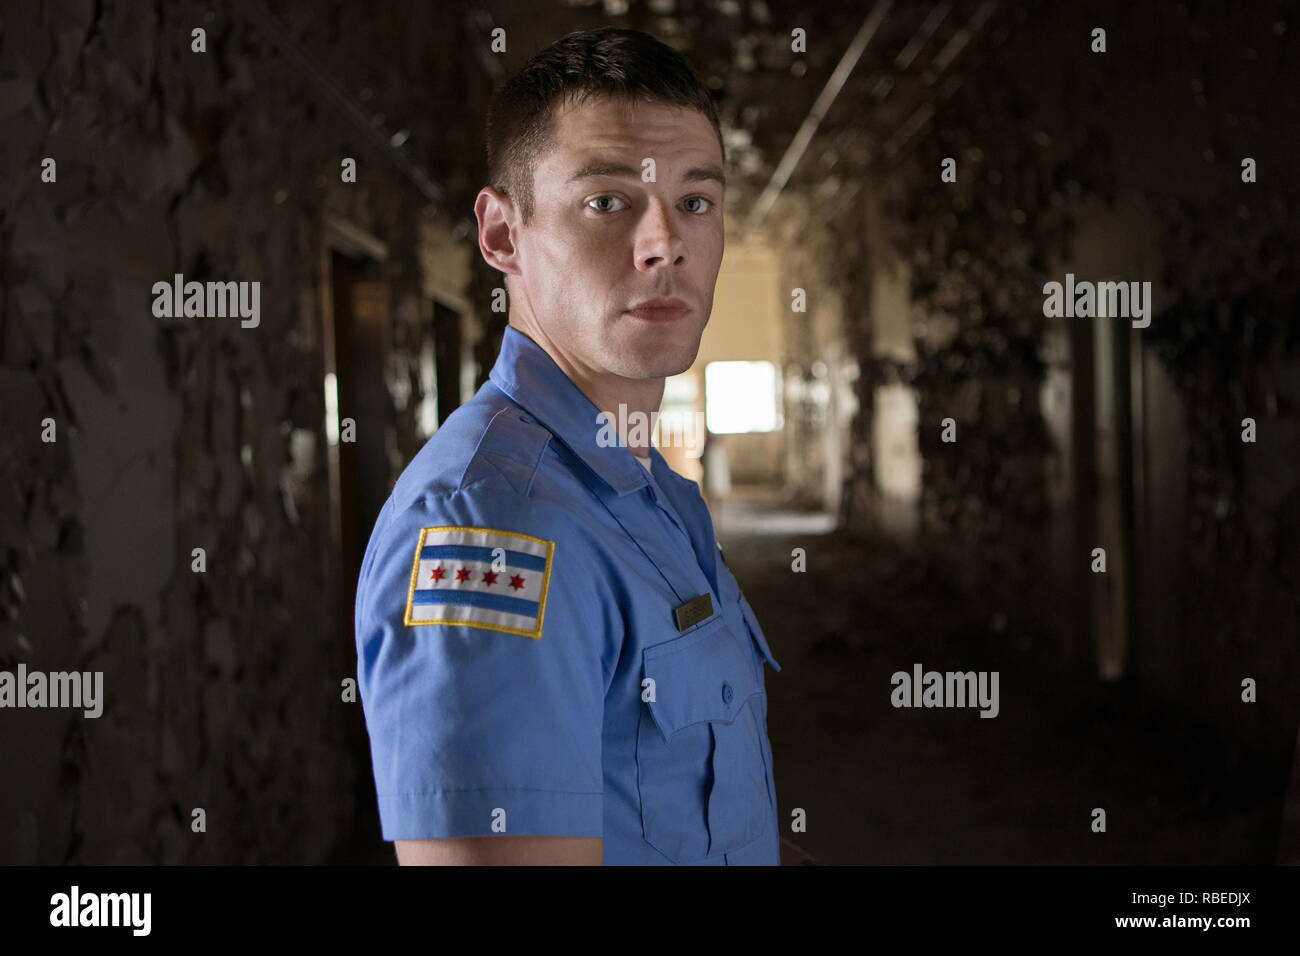 Brian J. Smith, 'Sense8' Season 1 (2015)  Credit: Netflix / The Hollywood Archive - Stock Image